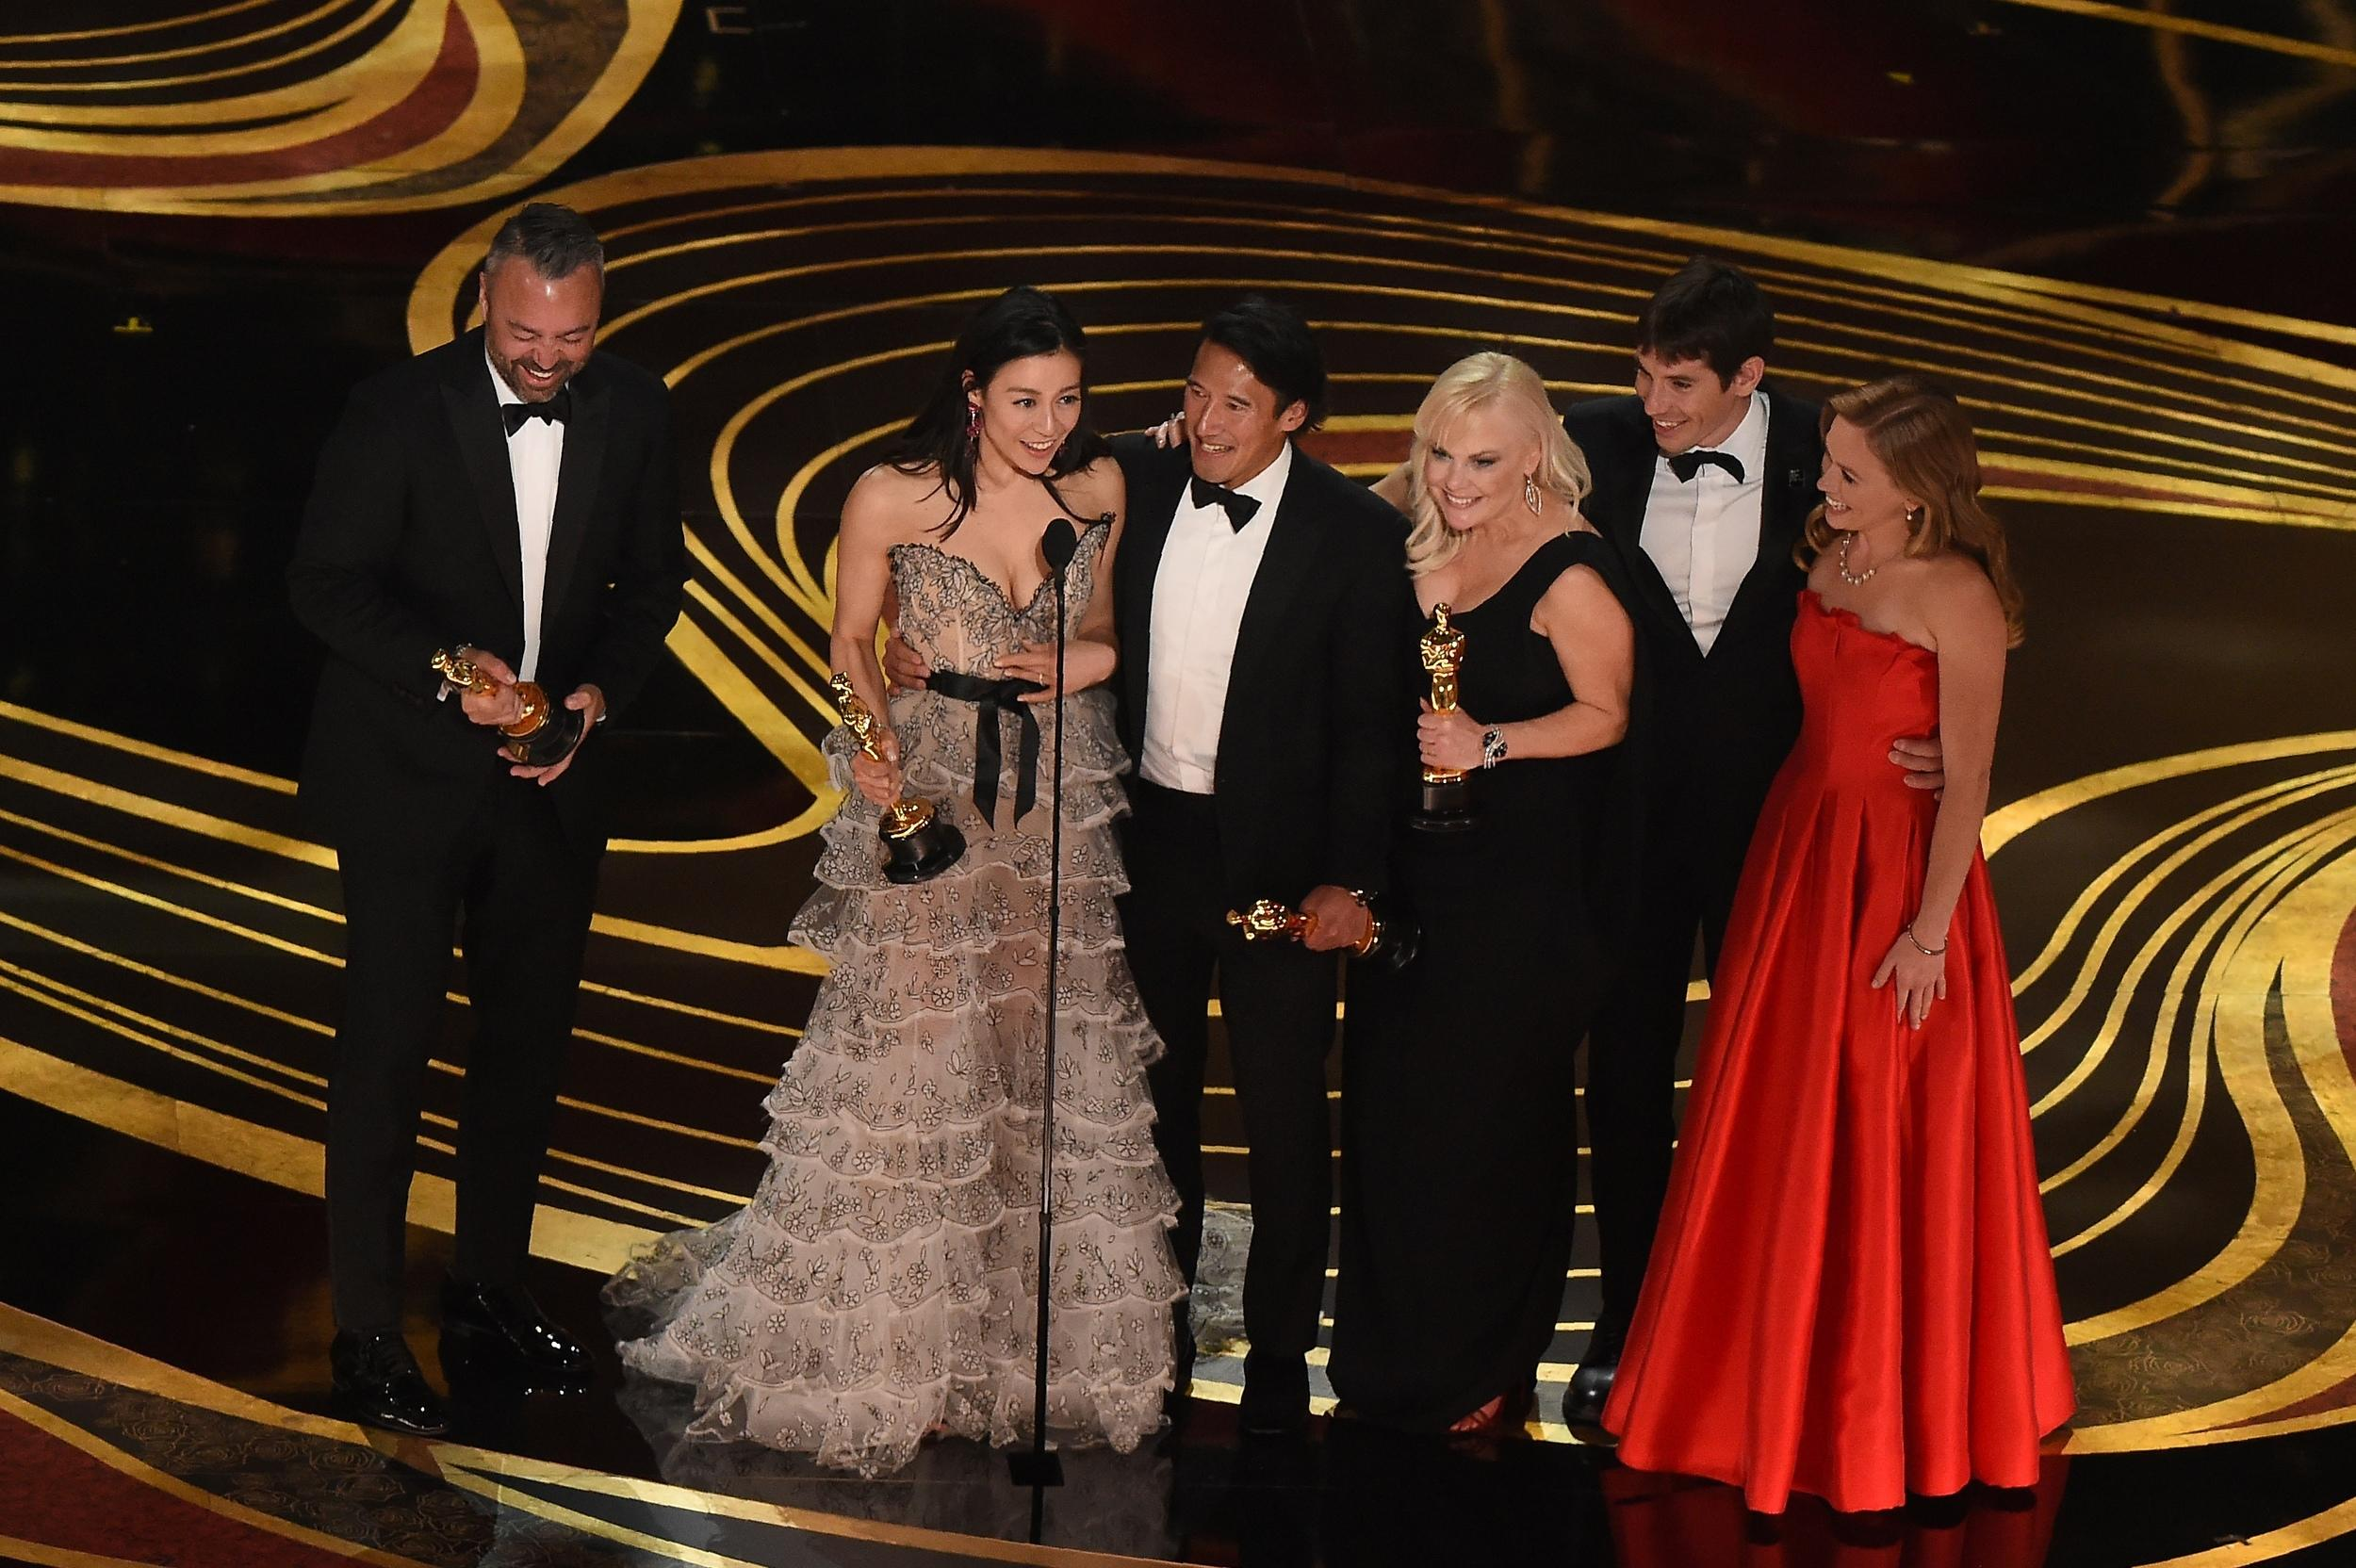 The crew of 'Free Solo' accepts the Oscar for Best Documentary during the 91st Annual Academy Awards at the Dolby Theatre in Hollywood, California on February 24, 2019. (Photo by VALERIE MACON / AFP)        (Photo credit should read VALERIE MACON/AFP/Getty Images)